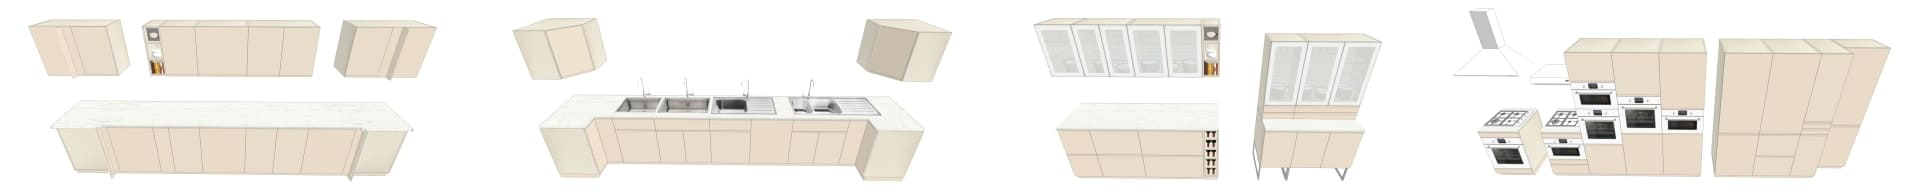 COLLECTION 3D IKEA VOXTORP BEIGE CL